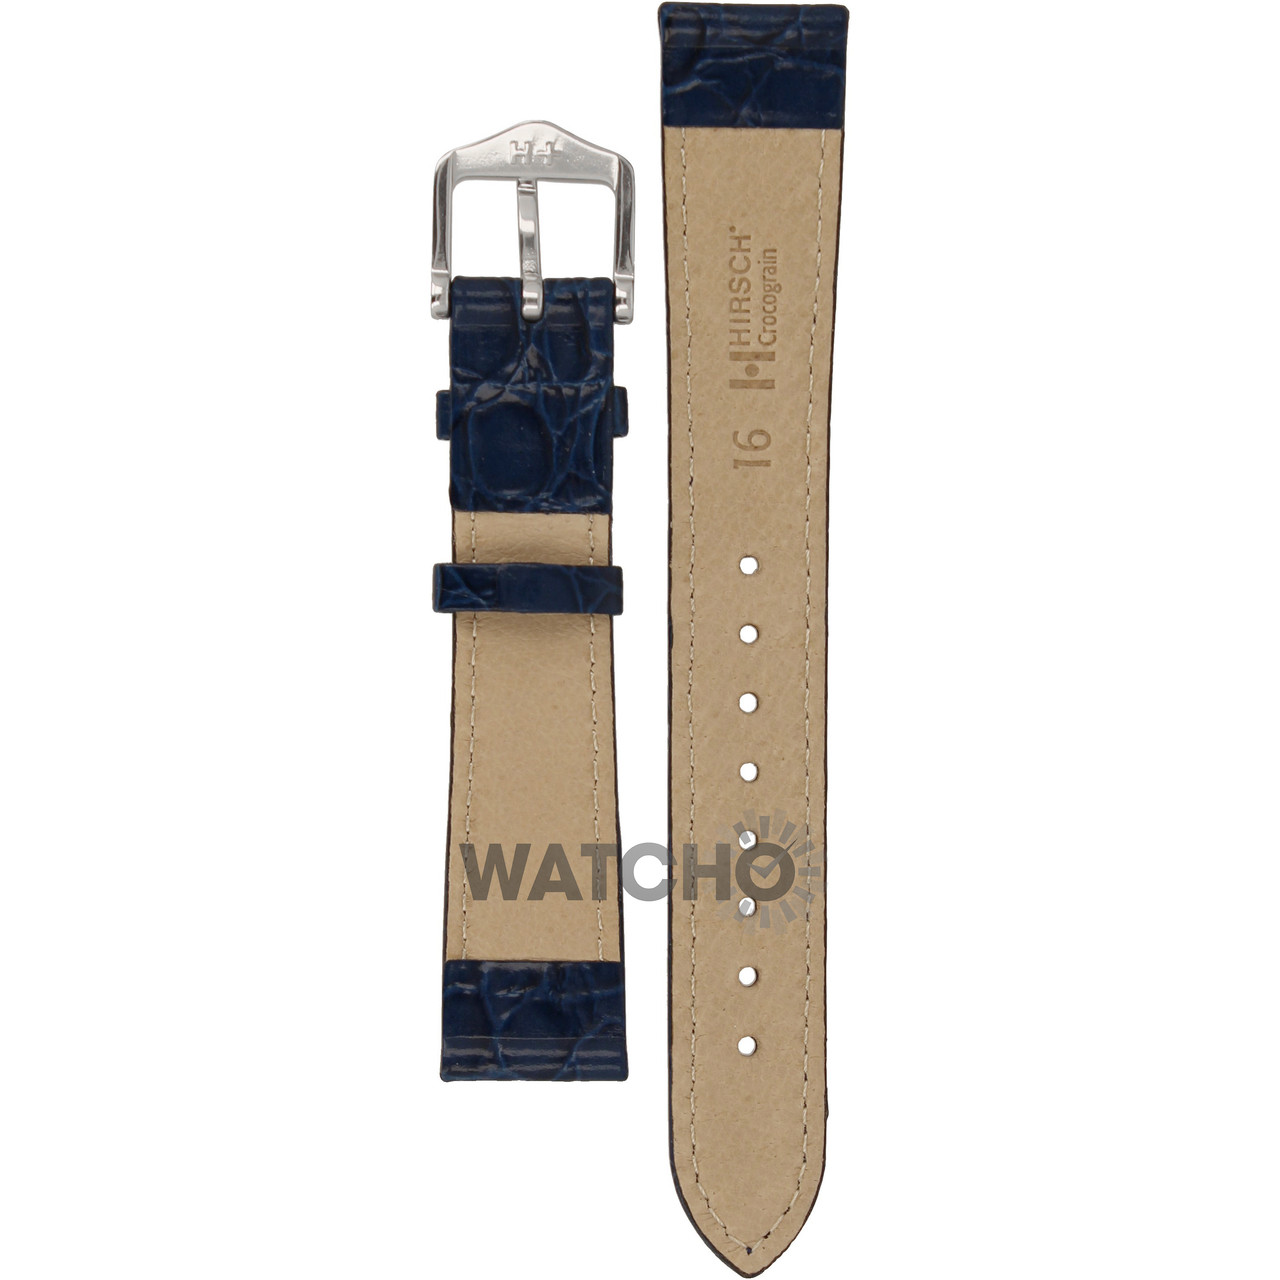 89a69a141 Hirsch Crocograin Replacement Watch Strap Blue Crocodile Embossed Leather  16mm With Free Connecting Pins. ◅ ZOOM | MORE PHOTOS ▻